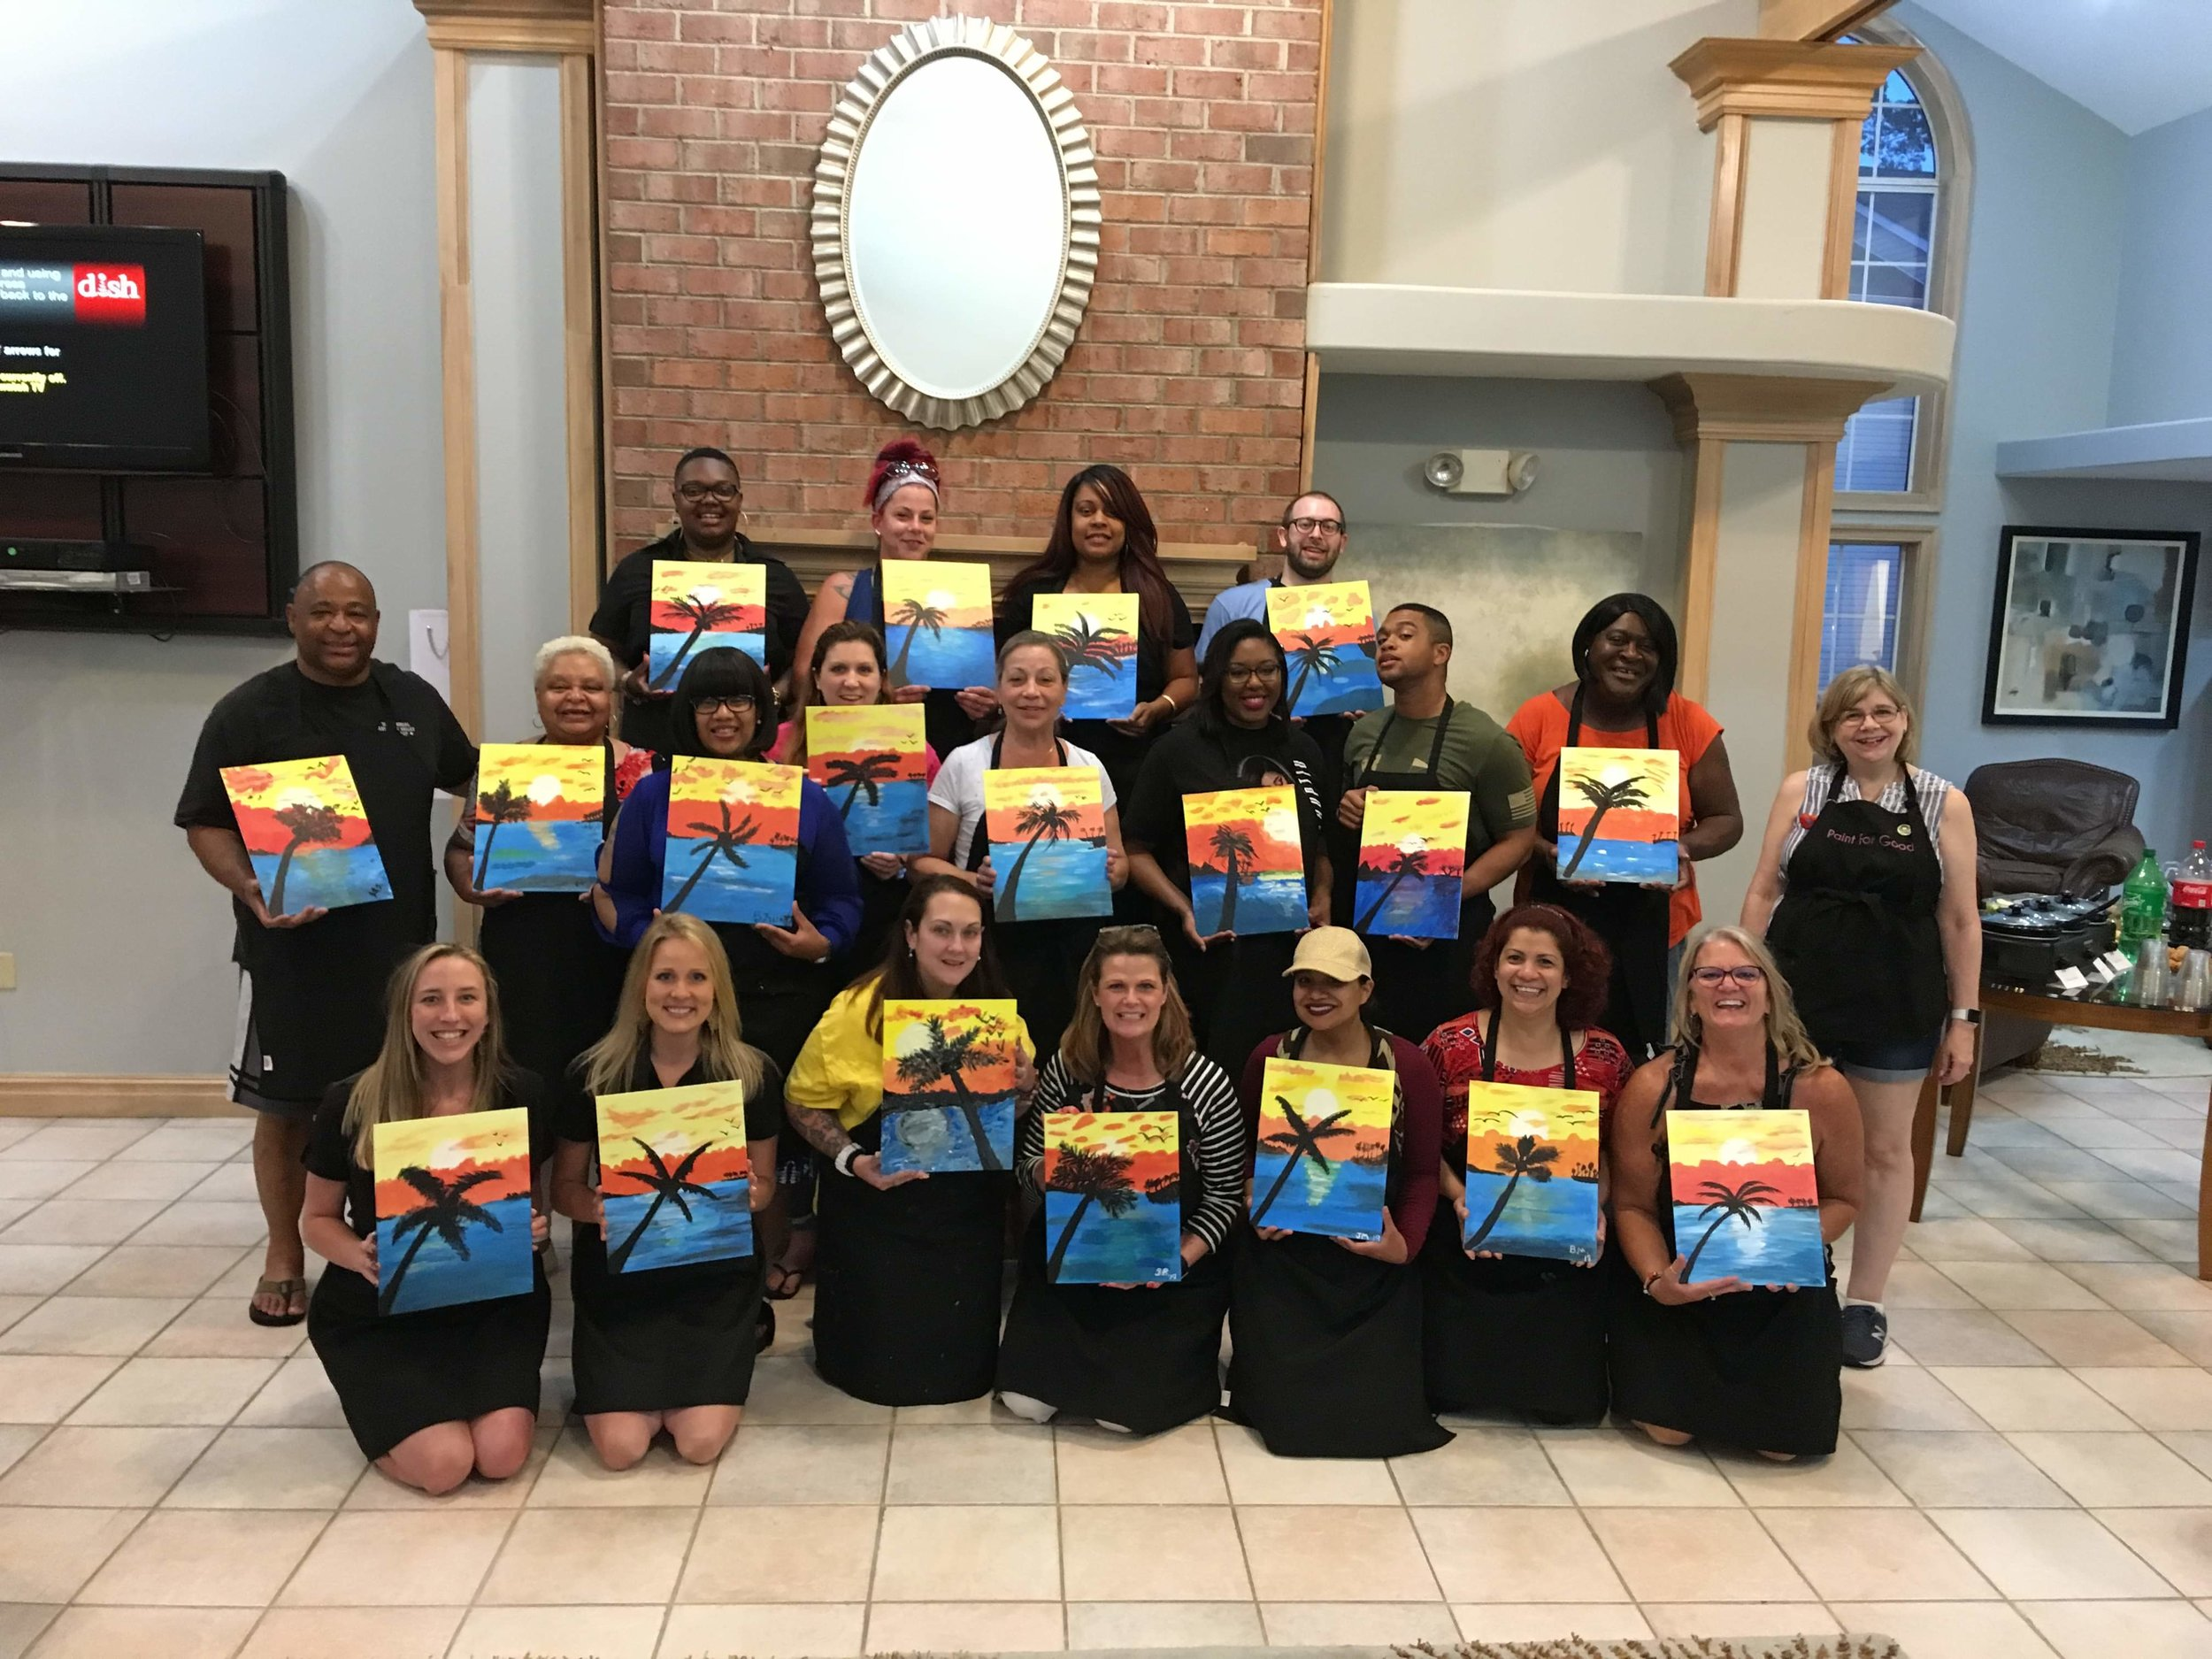 paint events   - Paint For Good is the perfect choice for your next team-building event, fundraiser, or party! We will travel to you or assist with securing a location for your event.